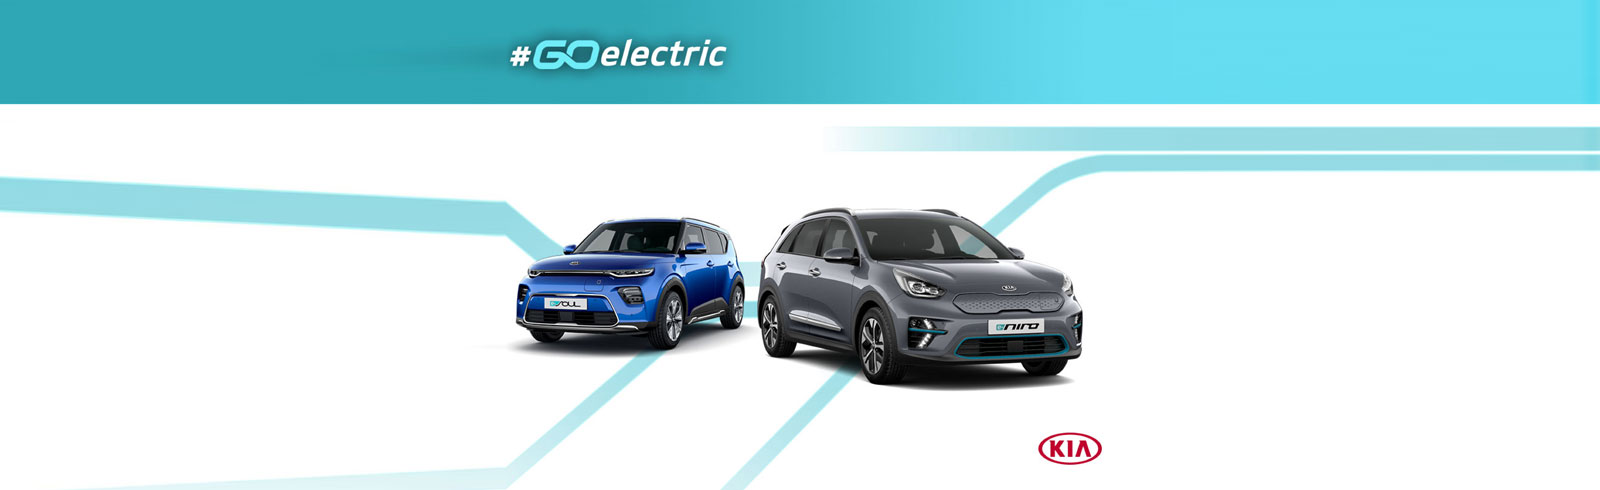 The first of Kia's next-gen EVs will be introduced to Europe in 2021, will offer 500 km of range